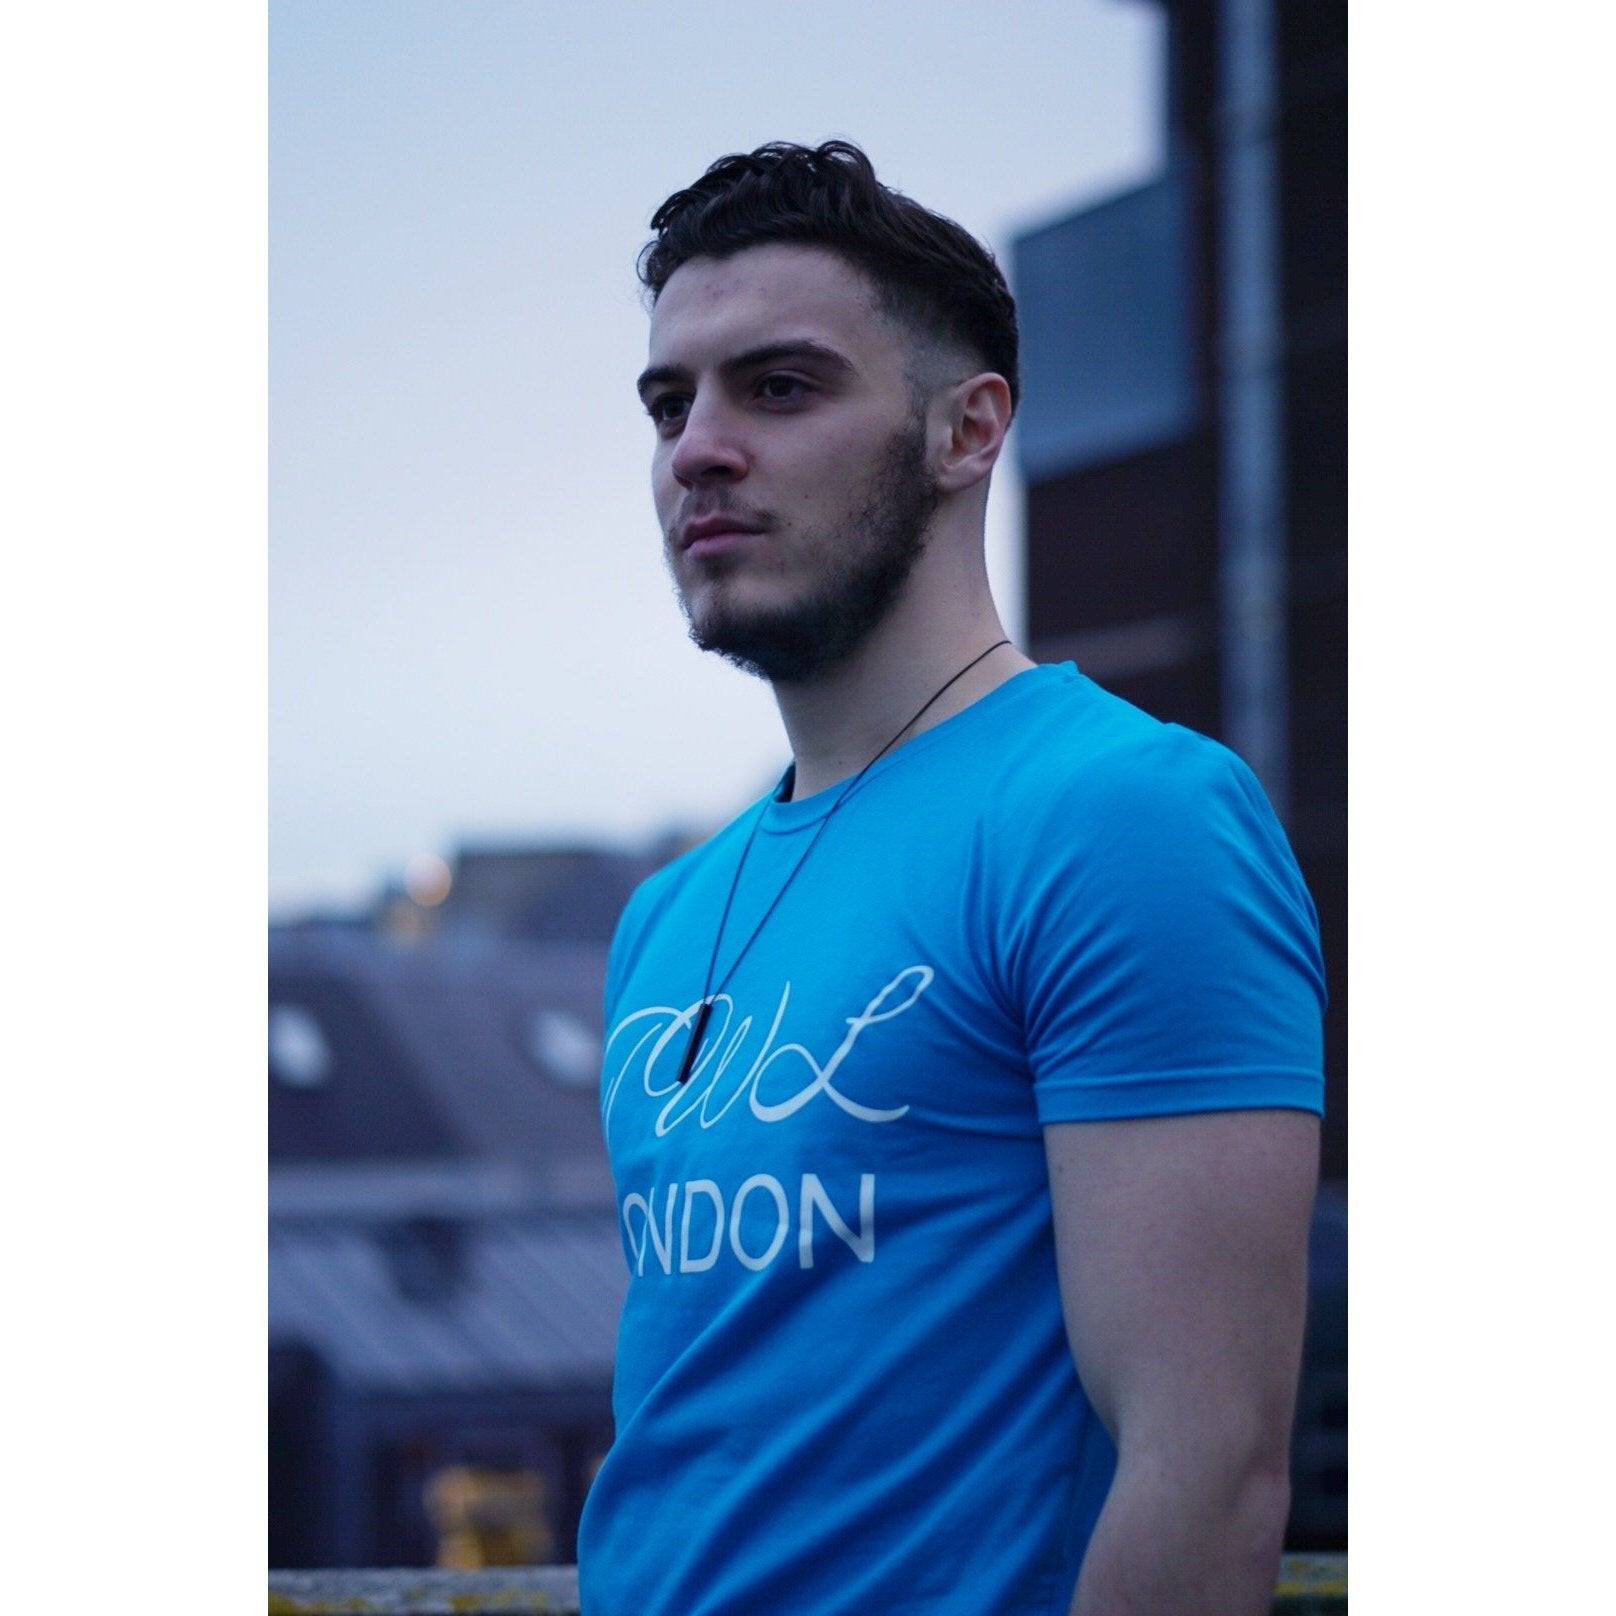 Super Nova Teal Blue T-shirt